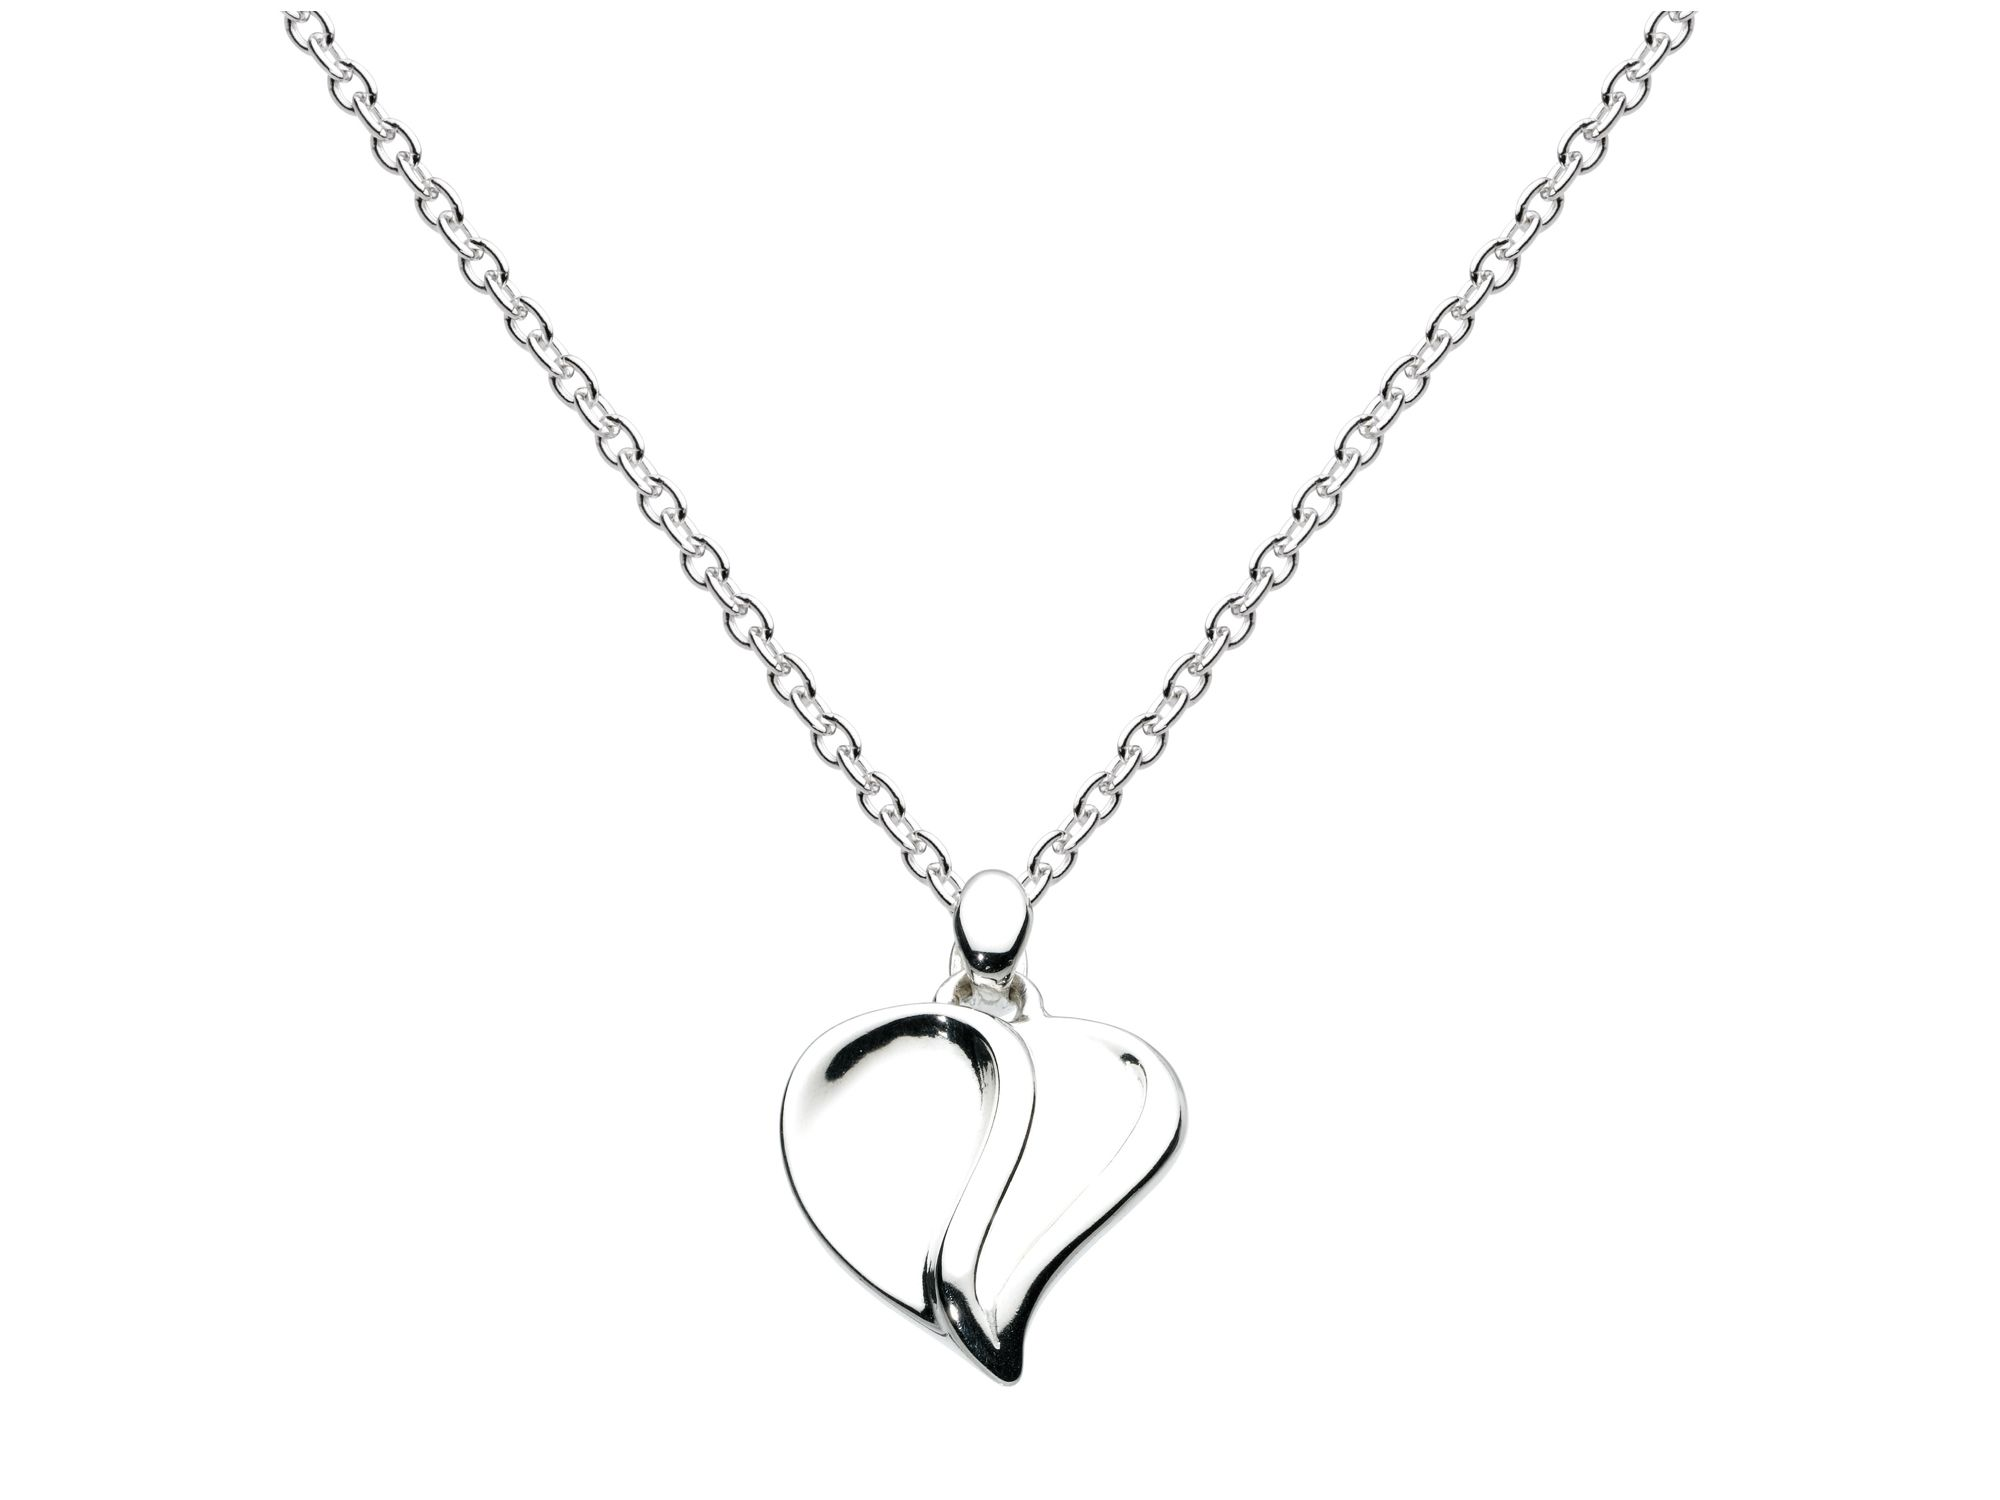 Sterling silver mayflower heart necklace